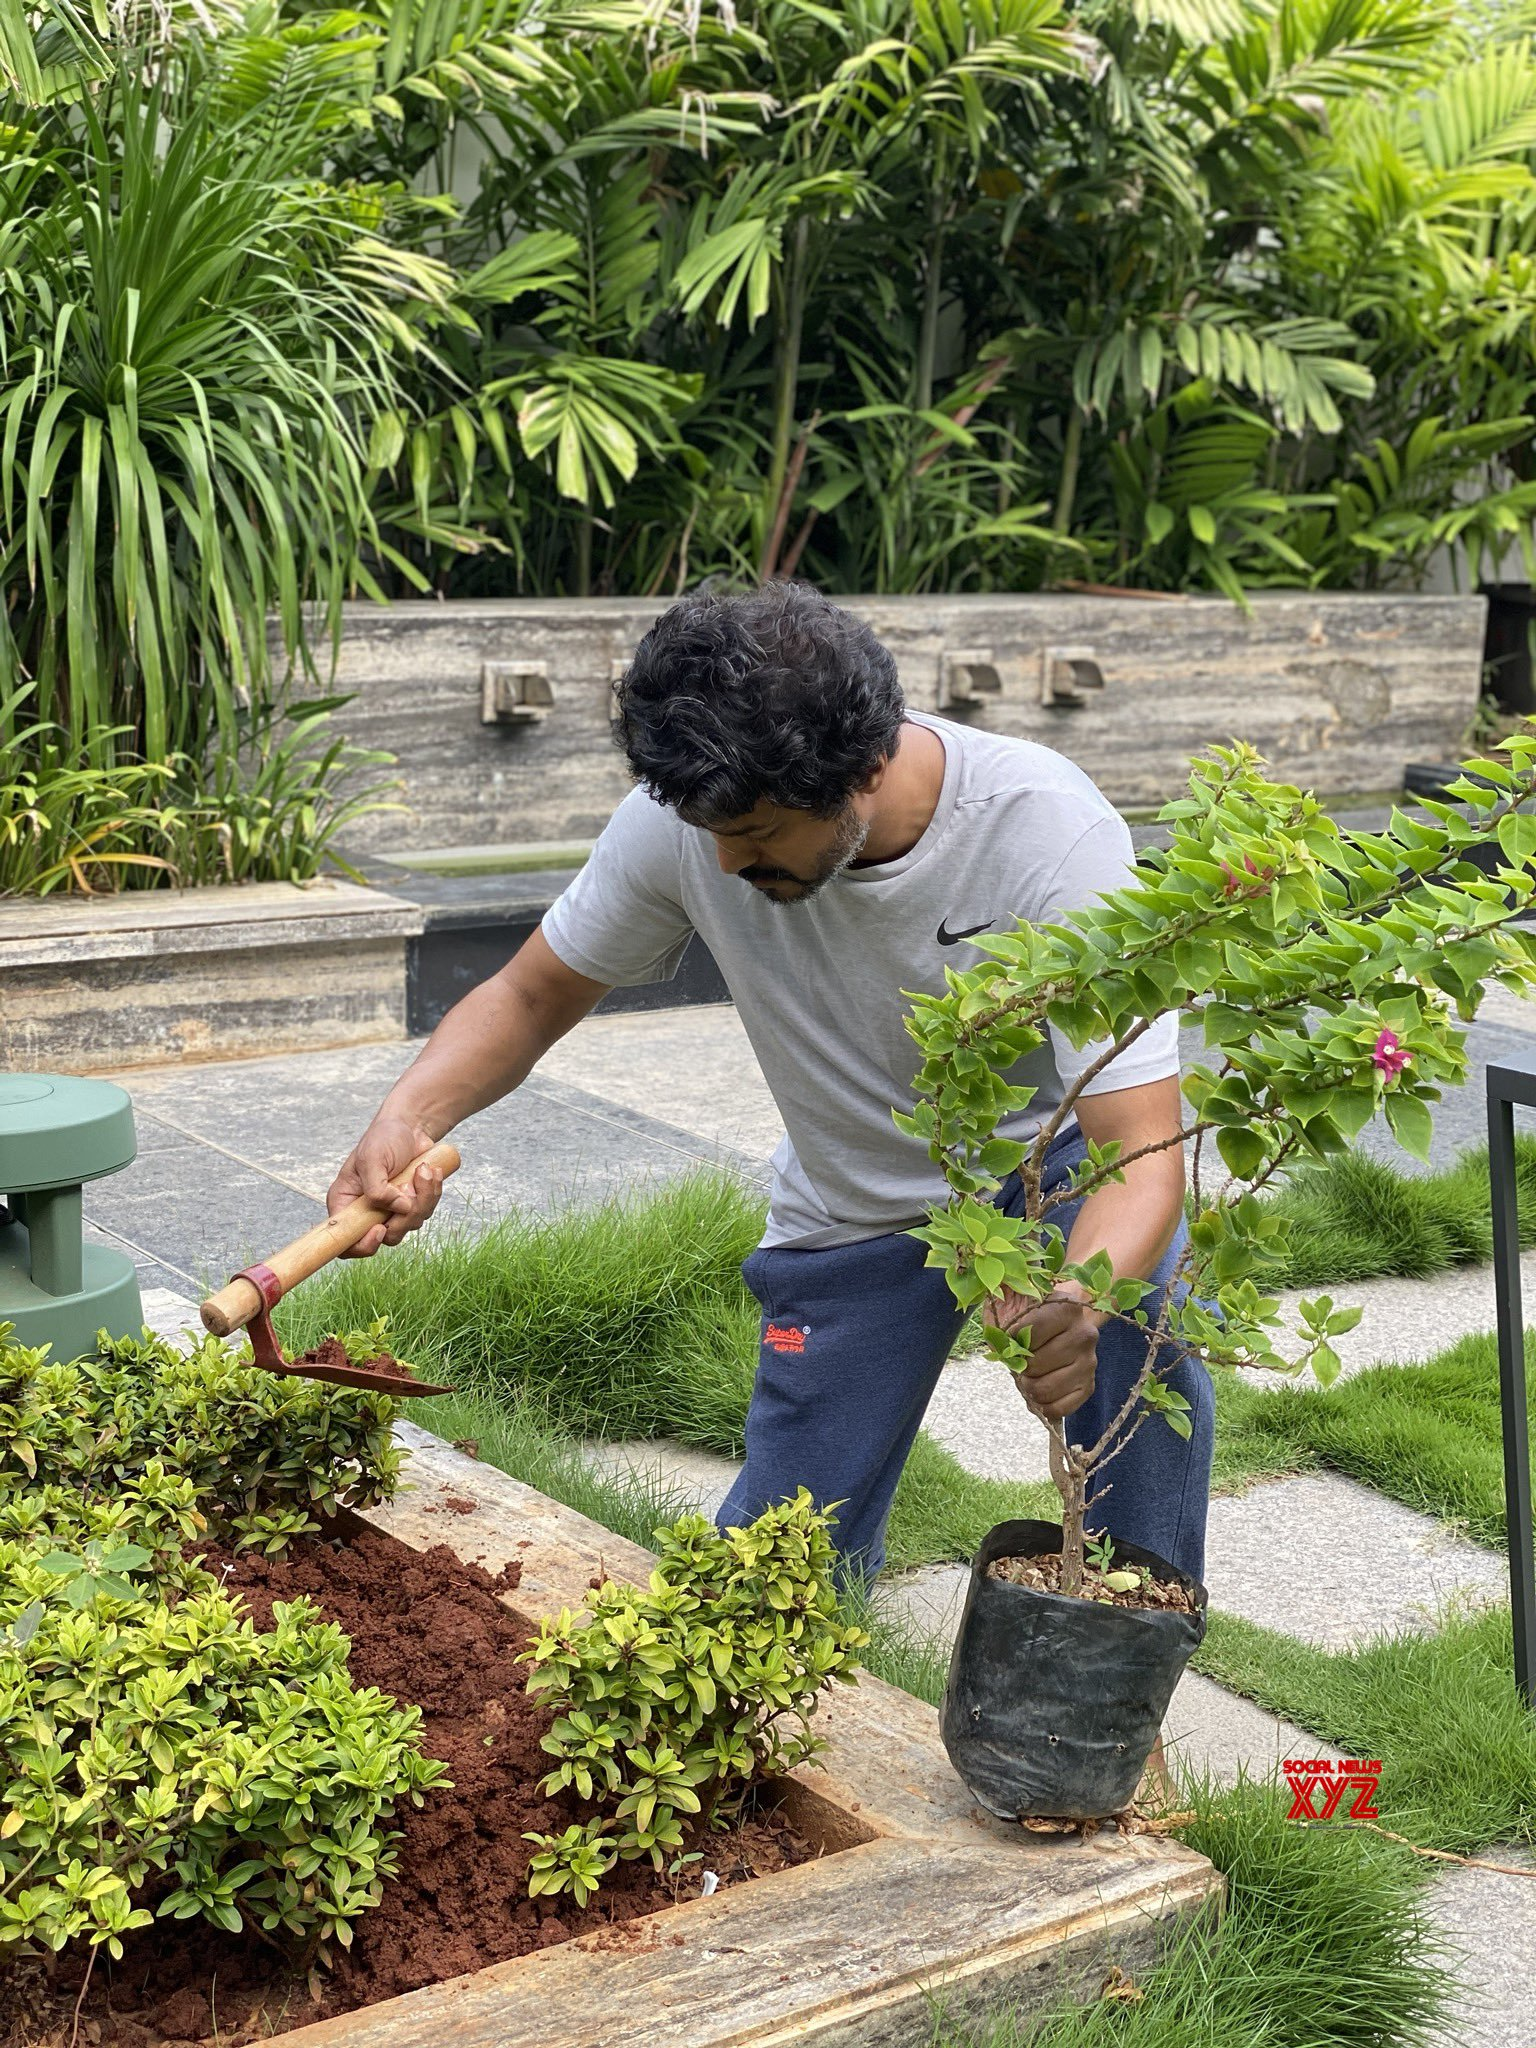 Thalapathy Vijay Takes Part In Green India Challenge Given By Super Star Mahesh Babu HD Gallery